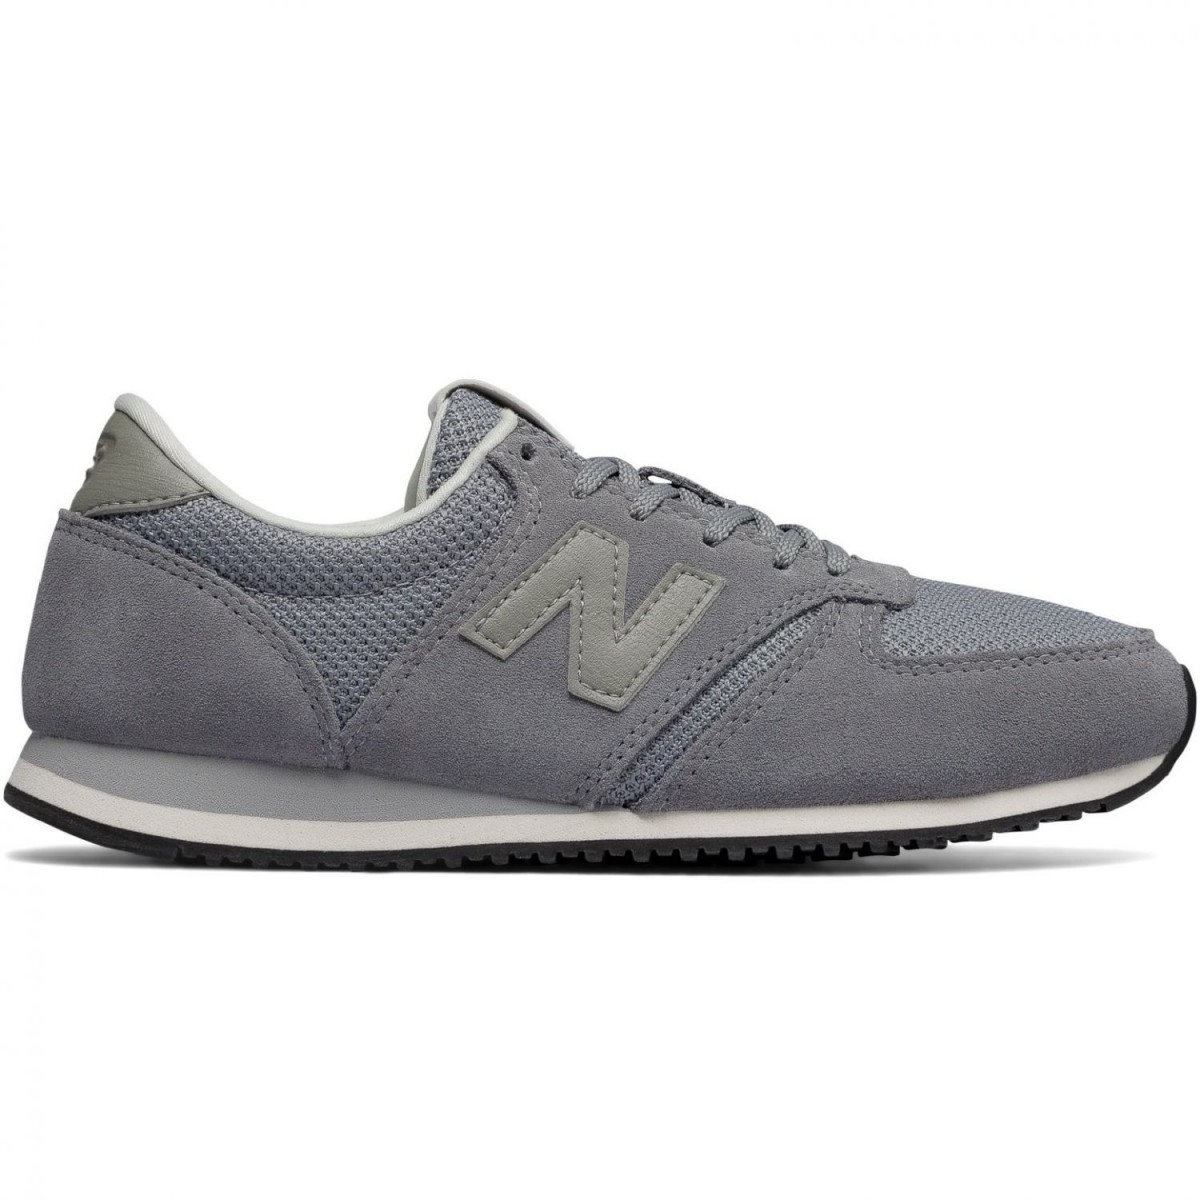 New Balance WL 420 Leather Sneaker